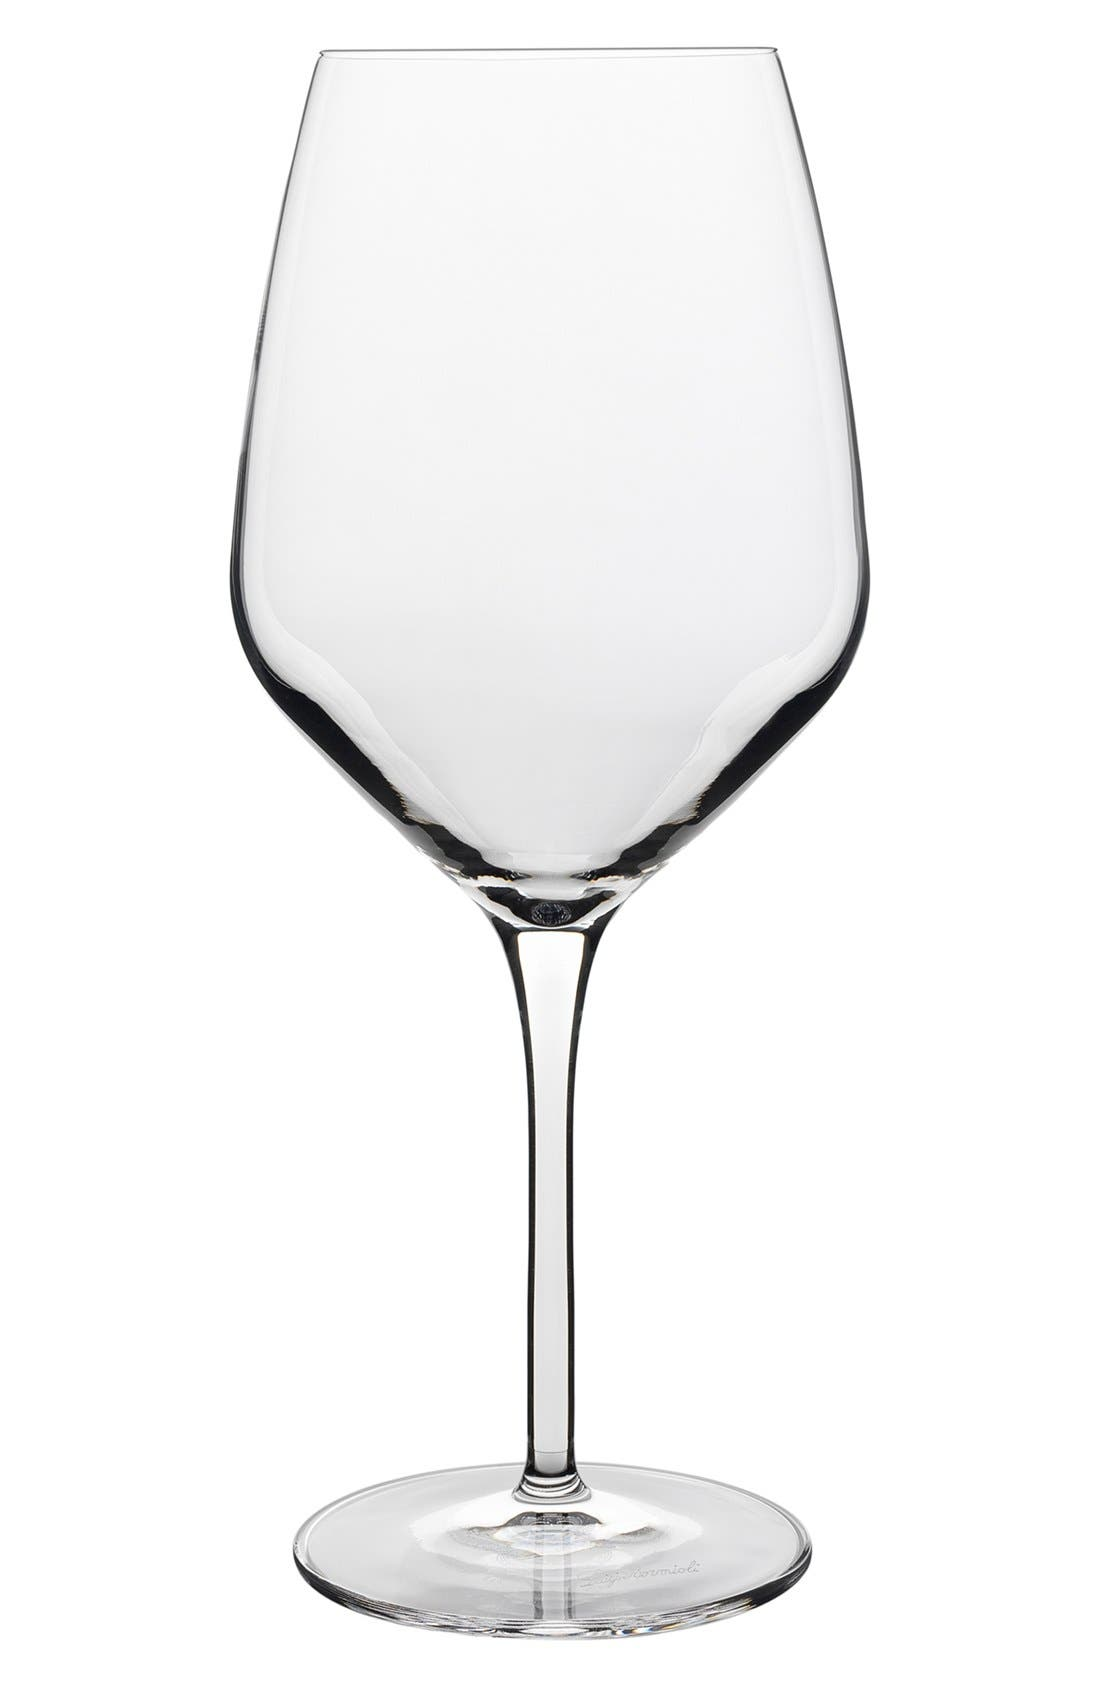 Prestige Set of 4 Wine Glasses,                             Alternate thumbnail 2, color,                             100